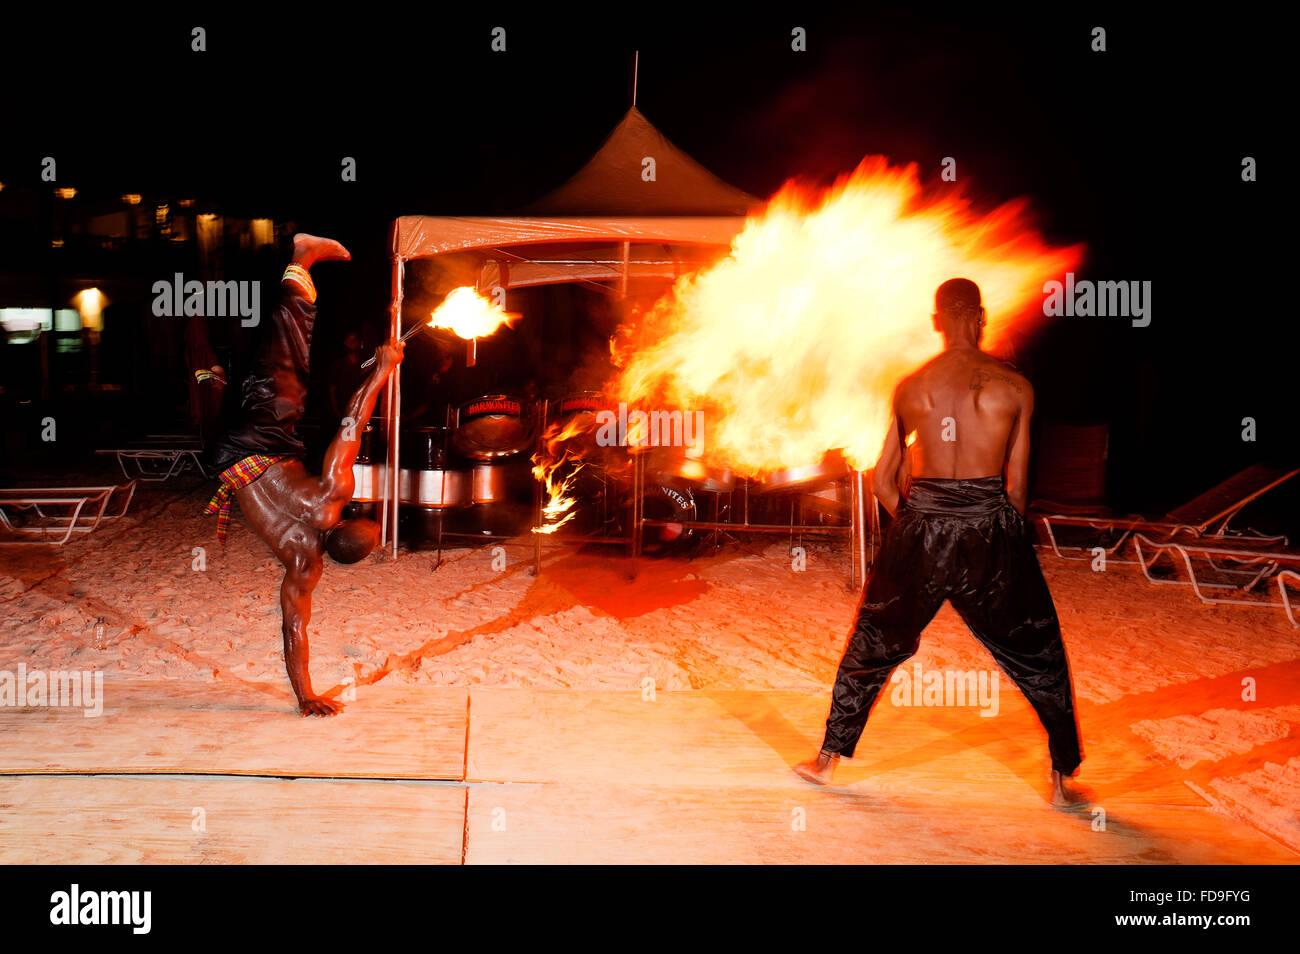 Flame throwers perform on the beach at night, Santa Lucia, Lesser Antilles, Caribbean - Stock Image